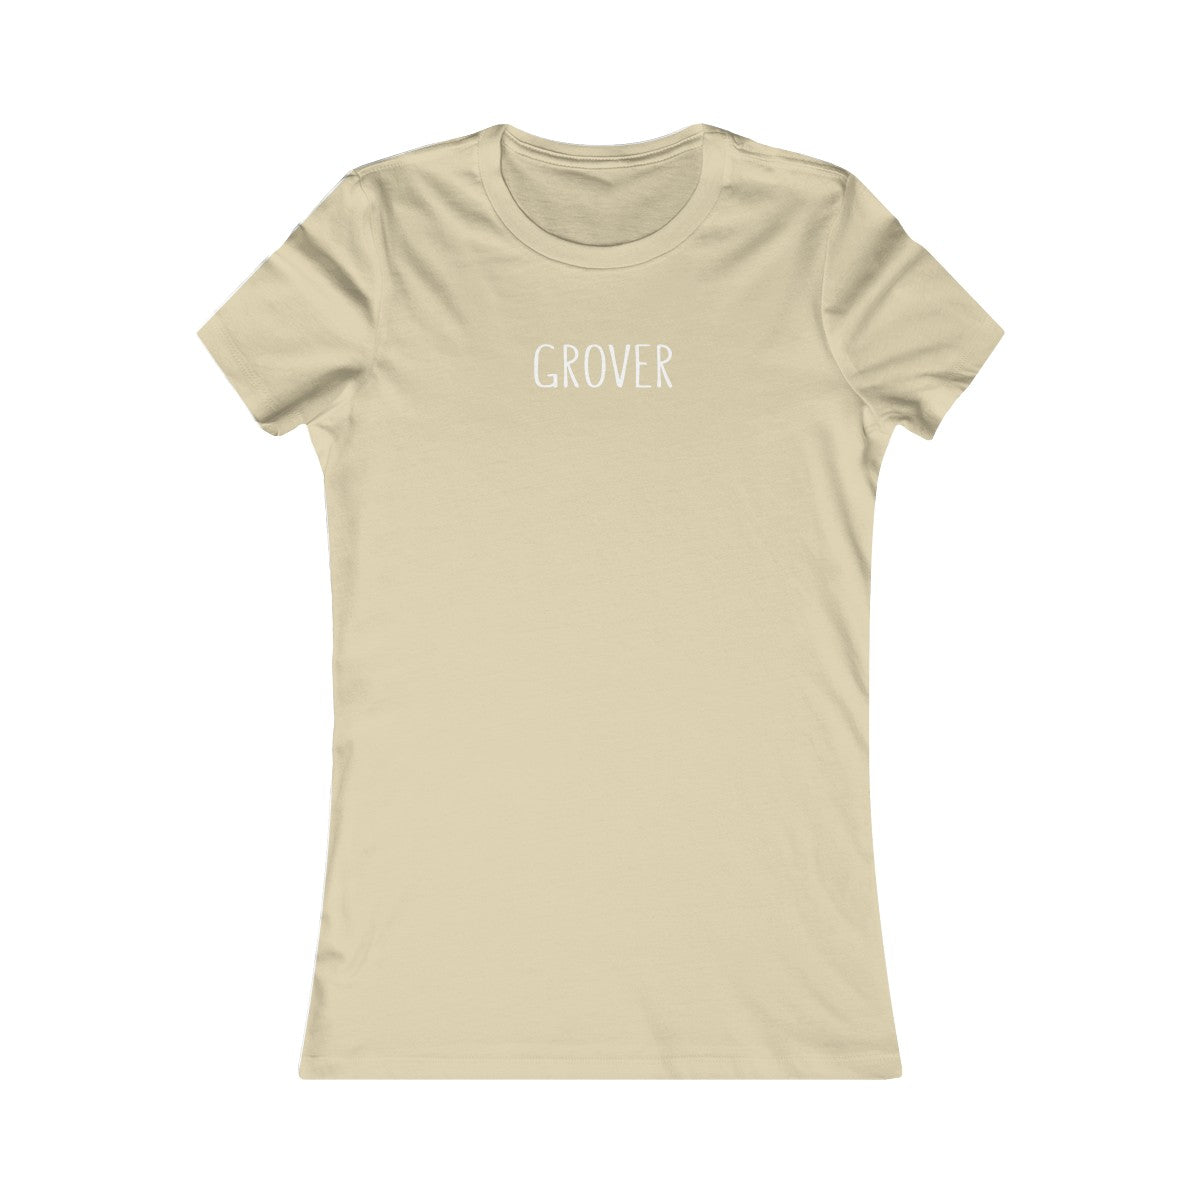 Grover Ladies Fitted Tshirt